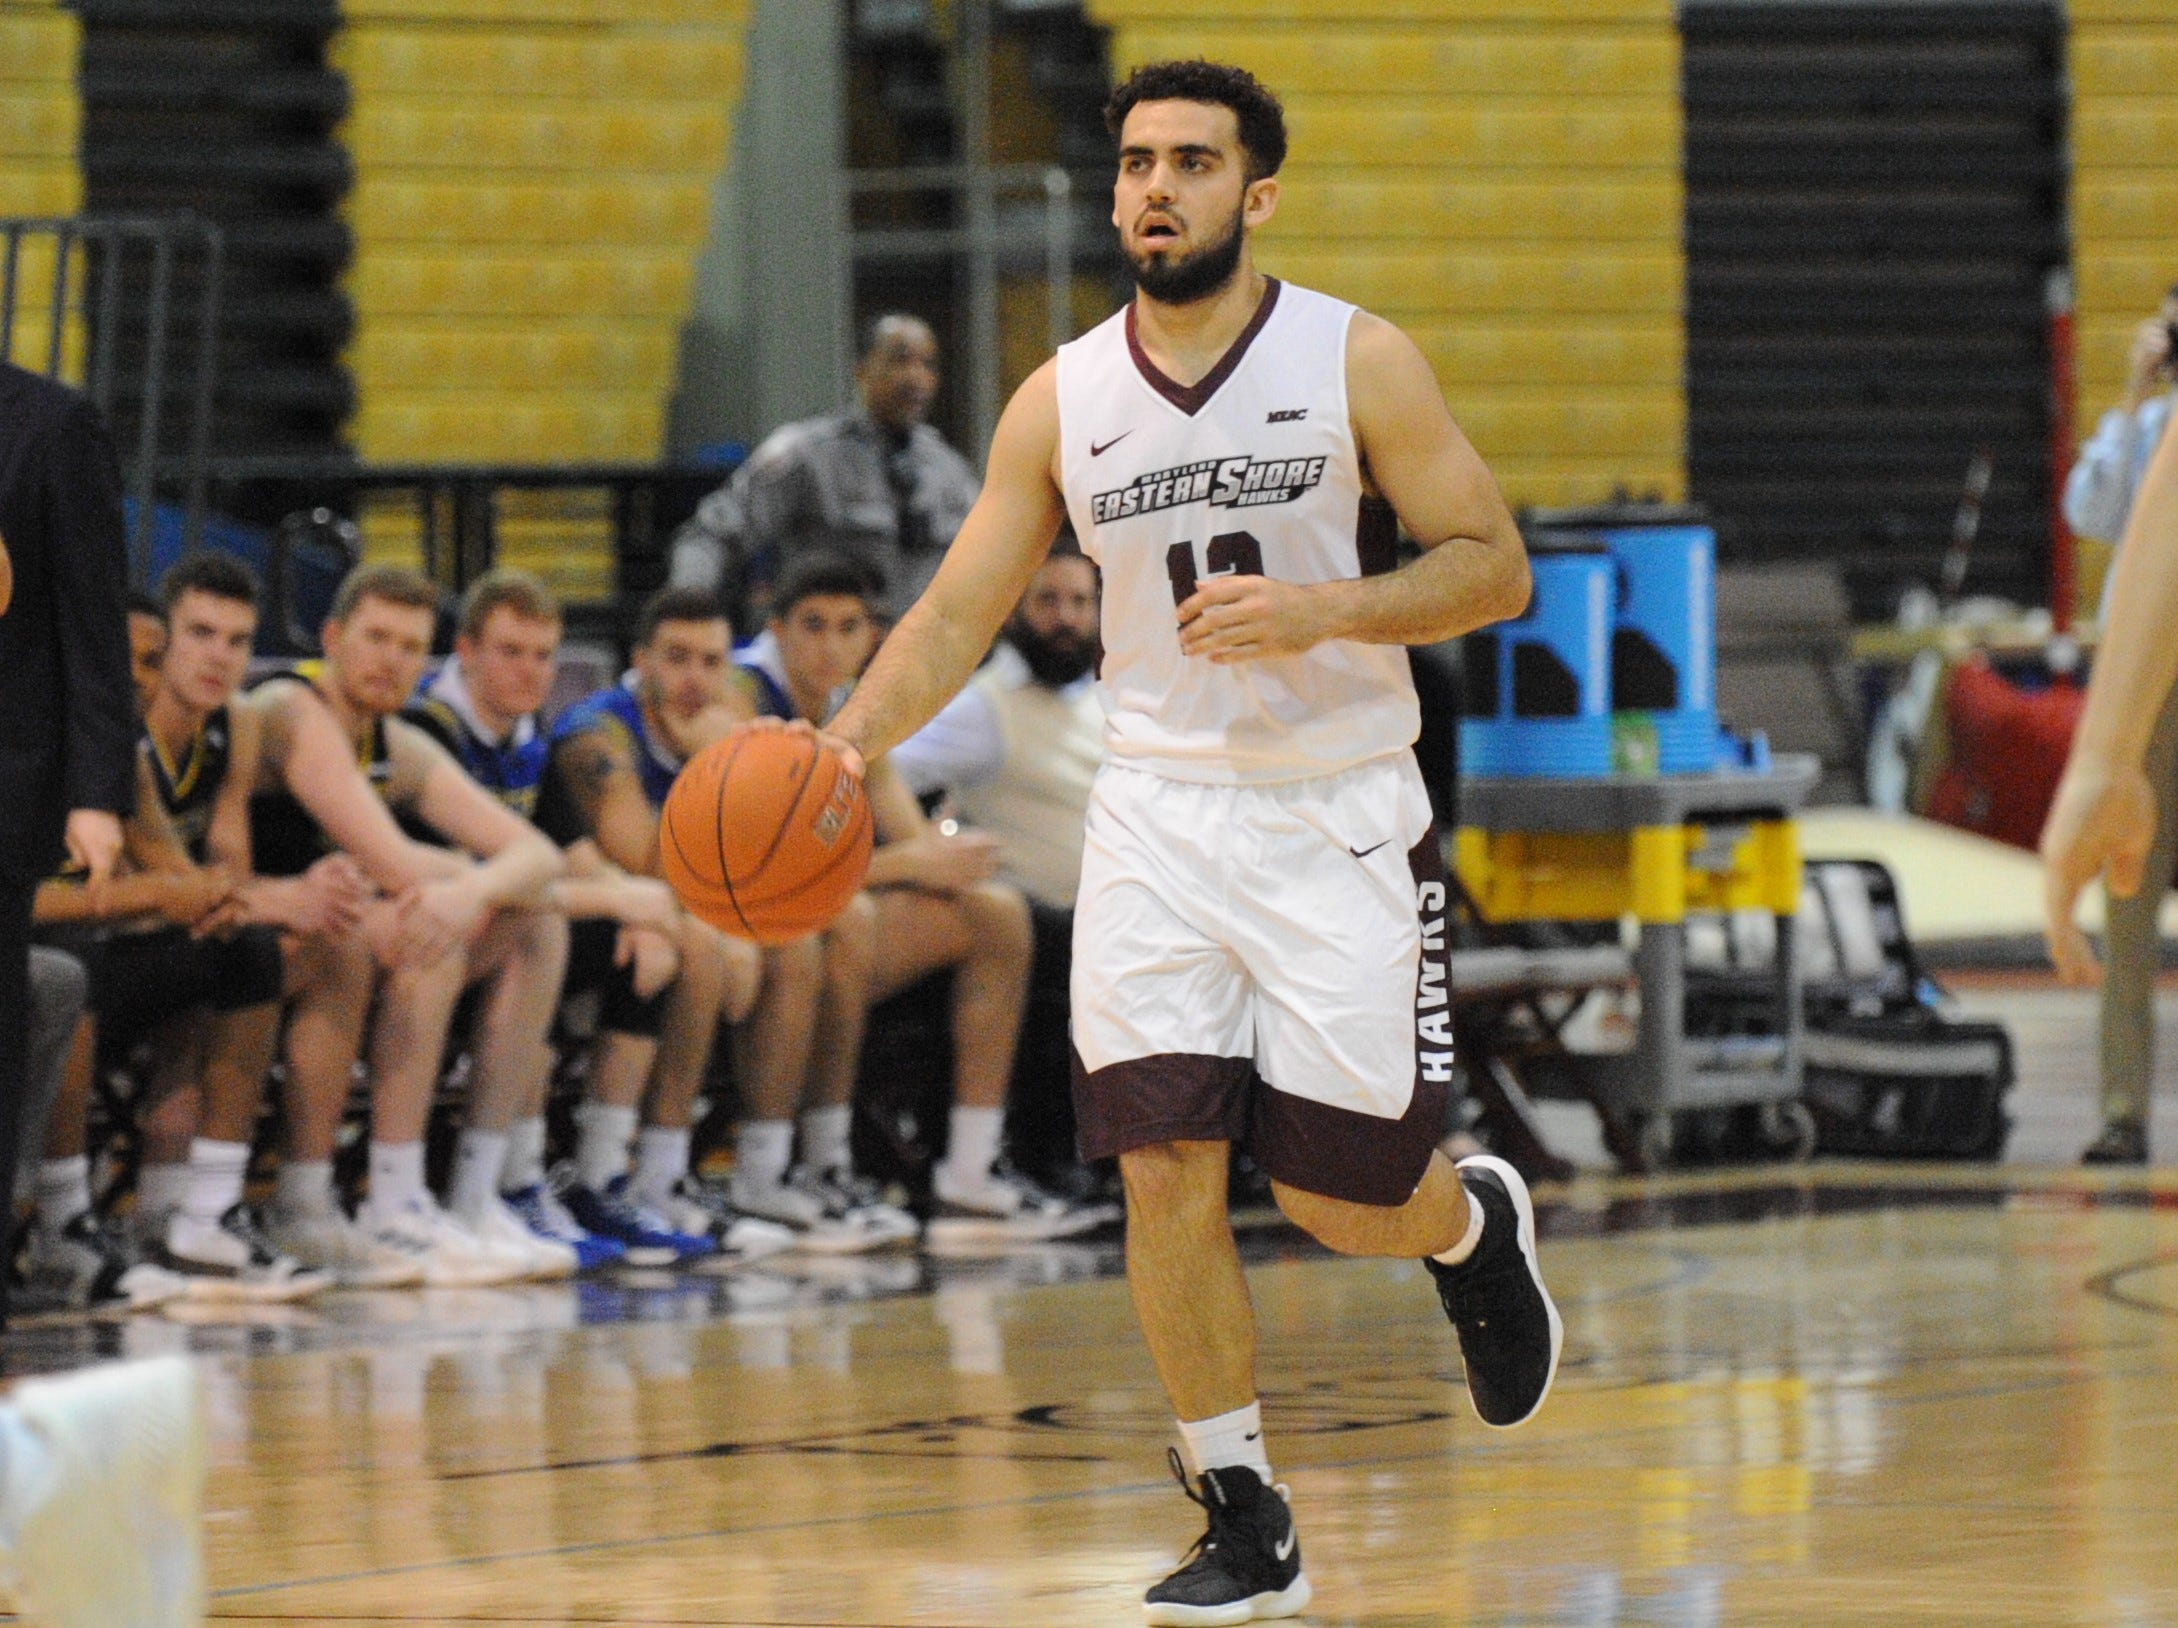 University of Maryland Eastern Shore guard Bryan Urrutia takes the ball up court against the University of Delaware on Friday, Nov. 30, 2018. The Blue Hens beat the Hawks, 71-62.